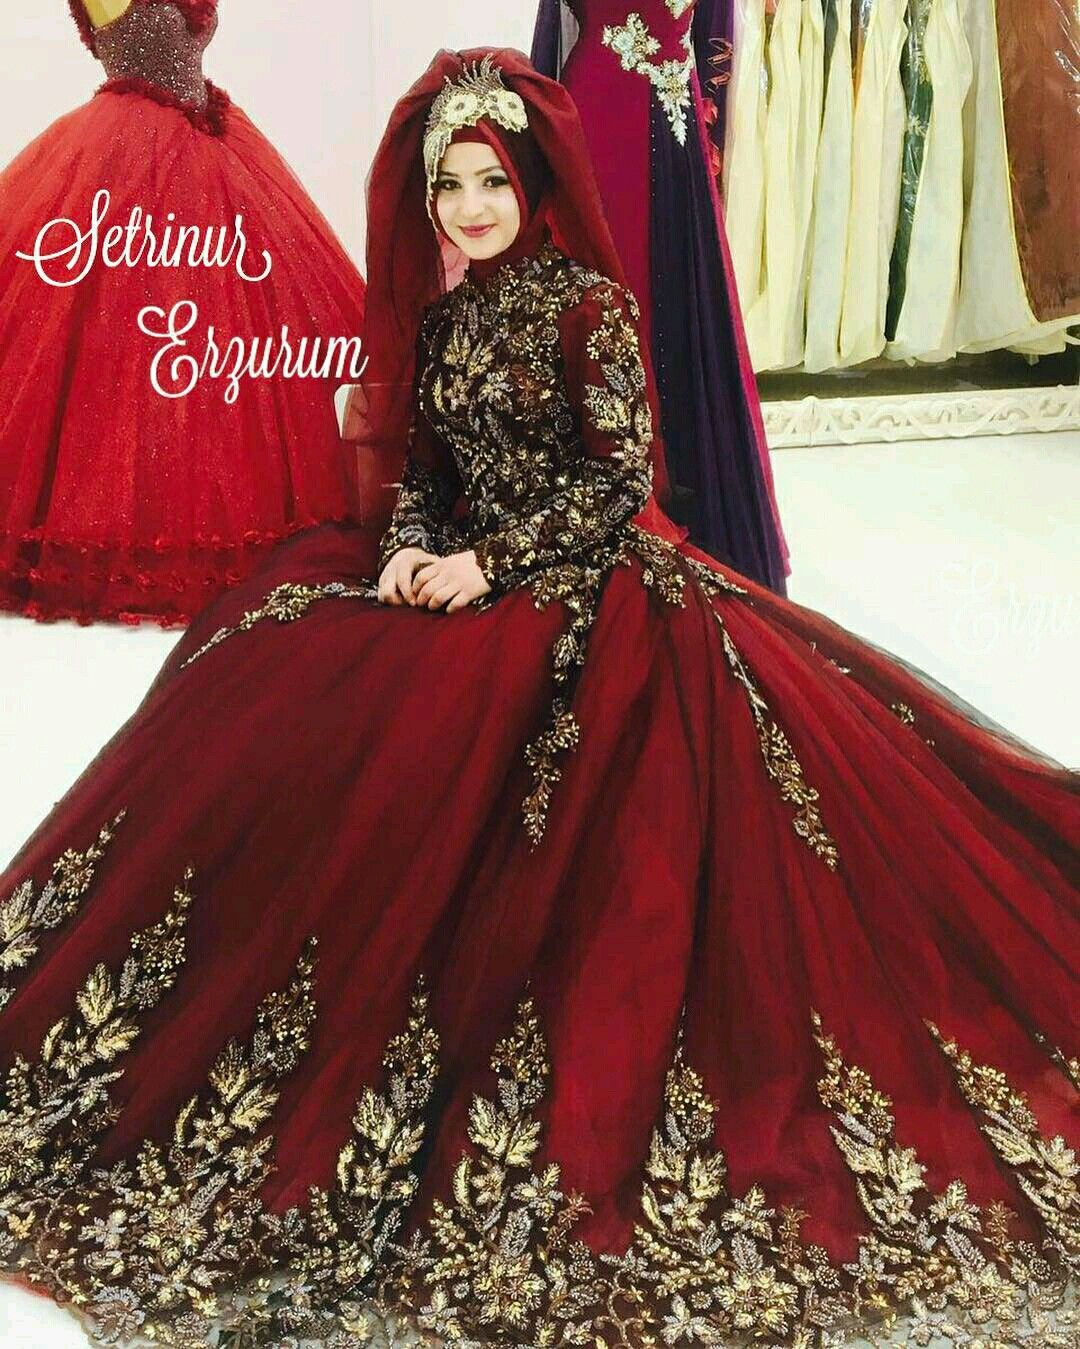 Wedding Hijab Styles Muslim Dresses Ball Gowns Long Prom Outfits Bridal Brides Gown